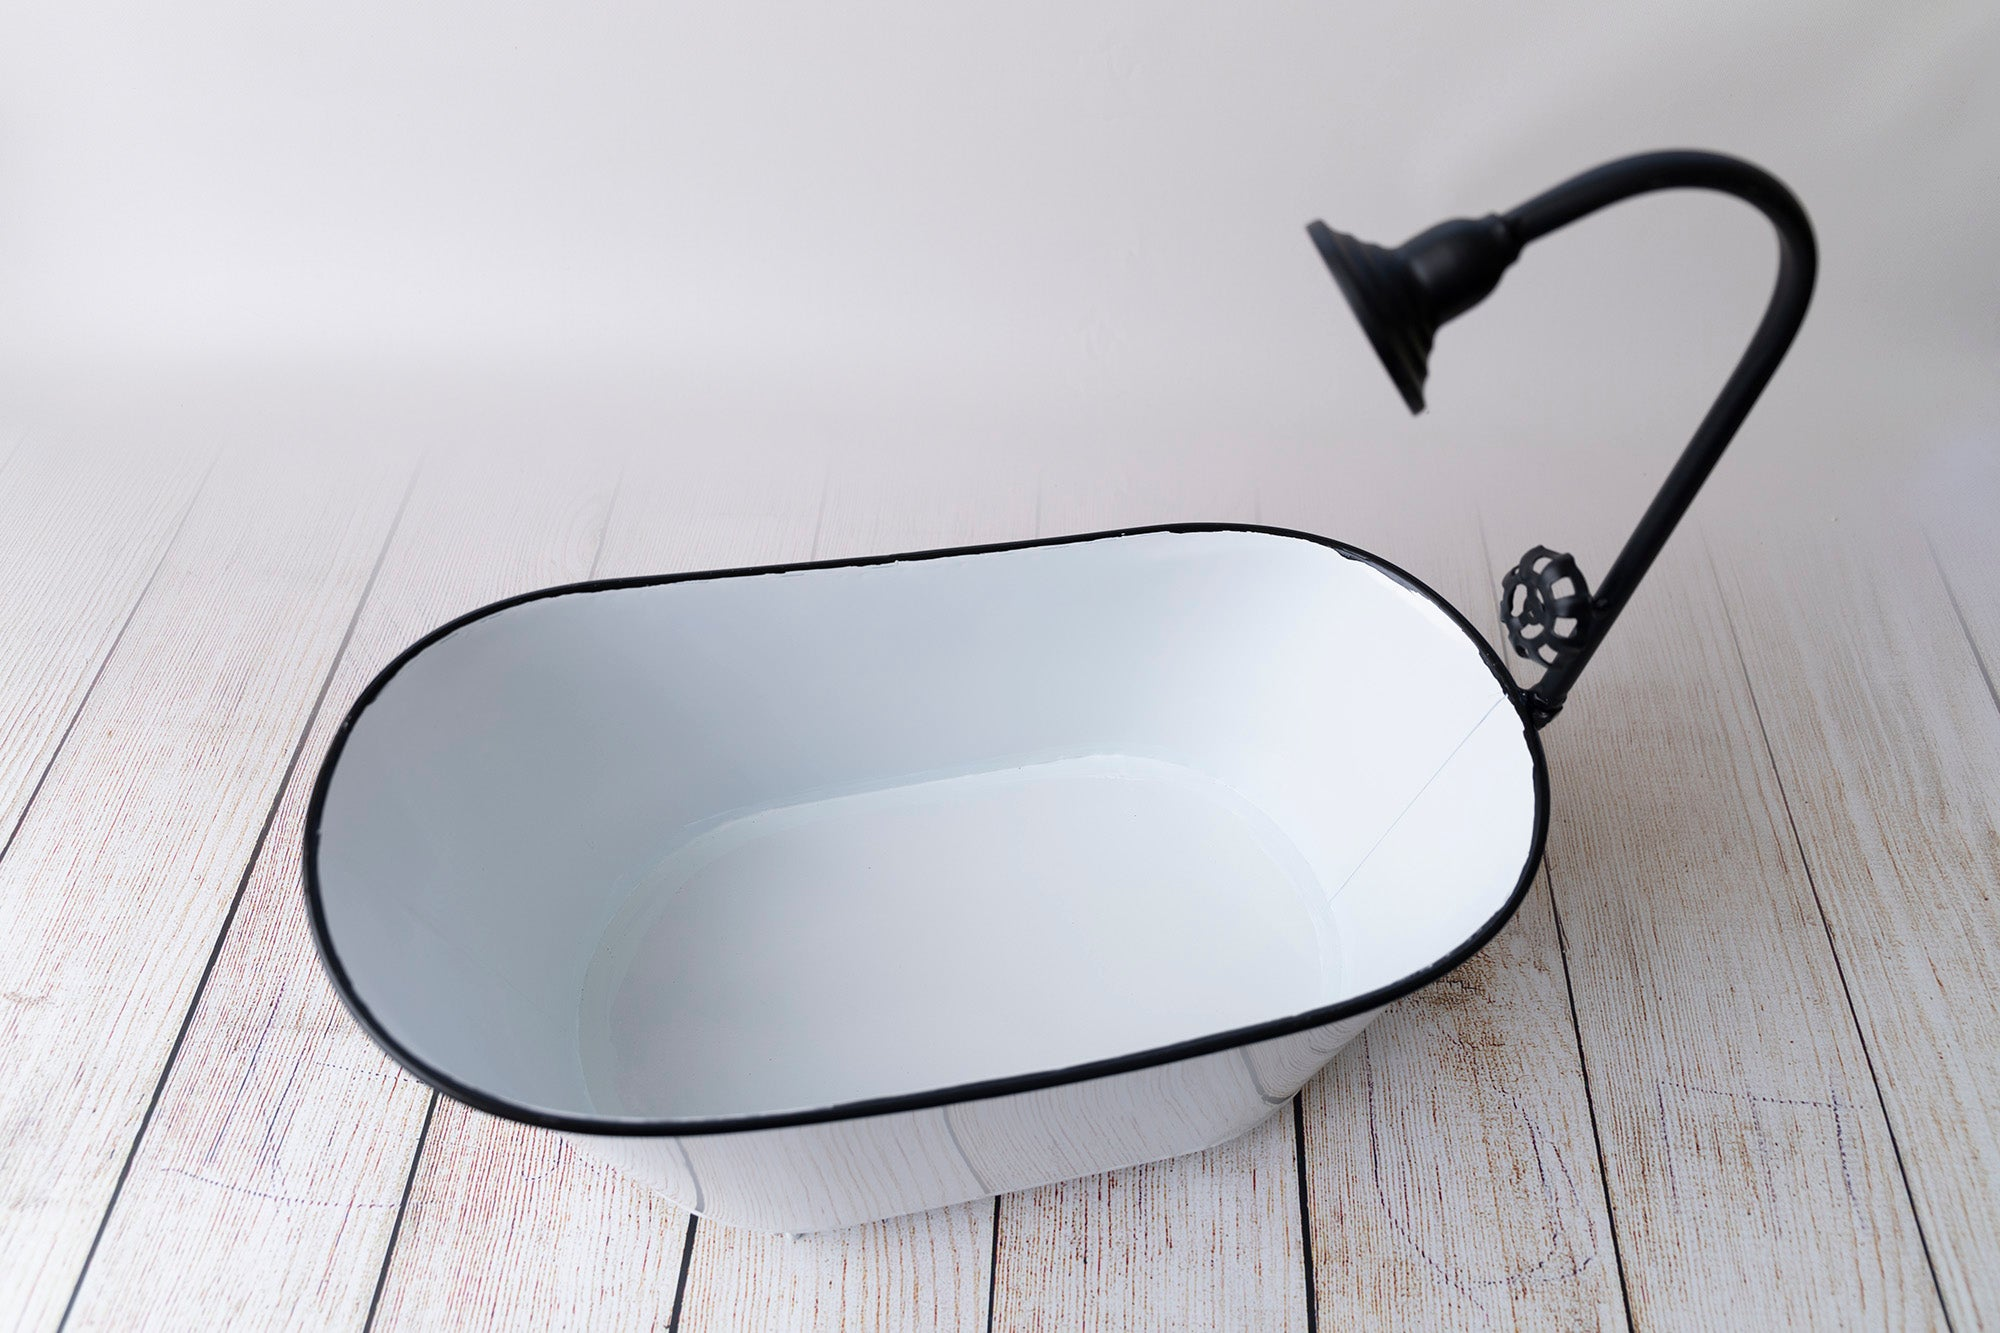 Footed Vintage Bathtub - White w/Black Rim